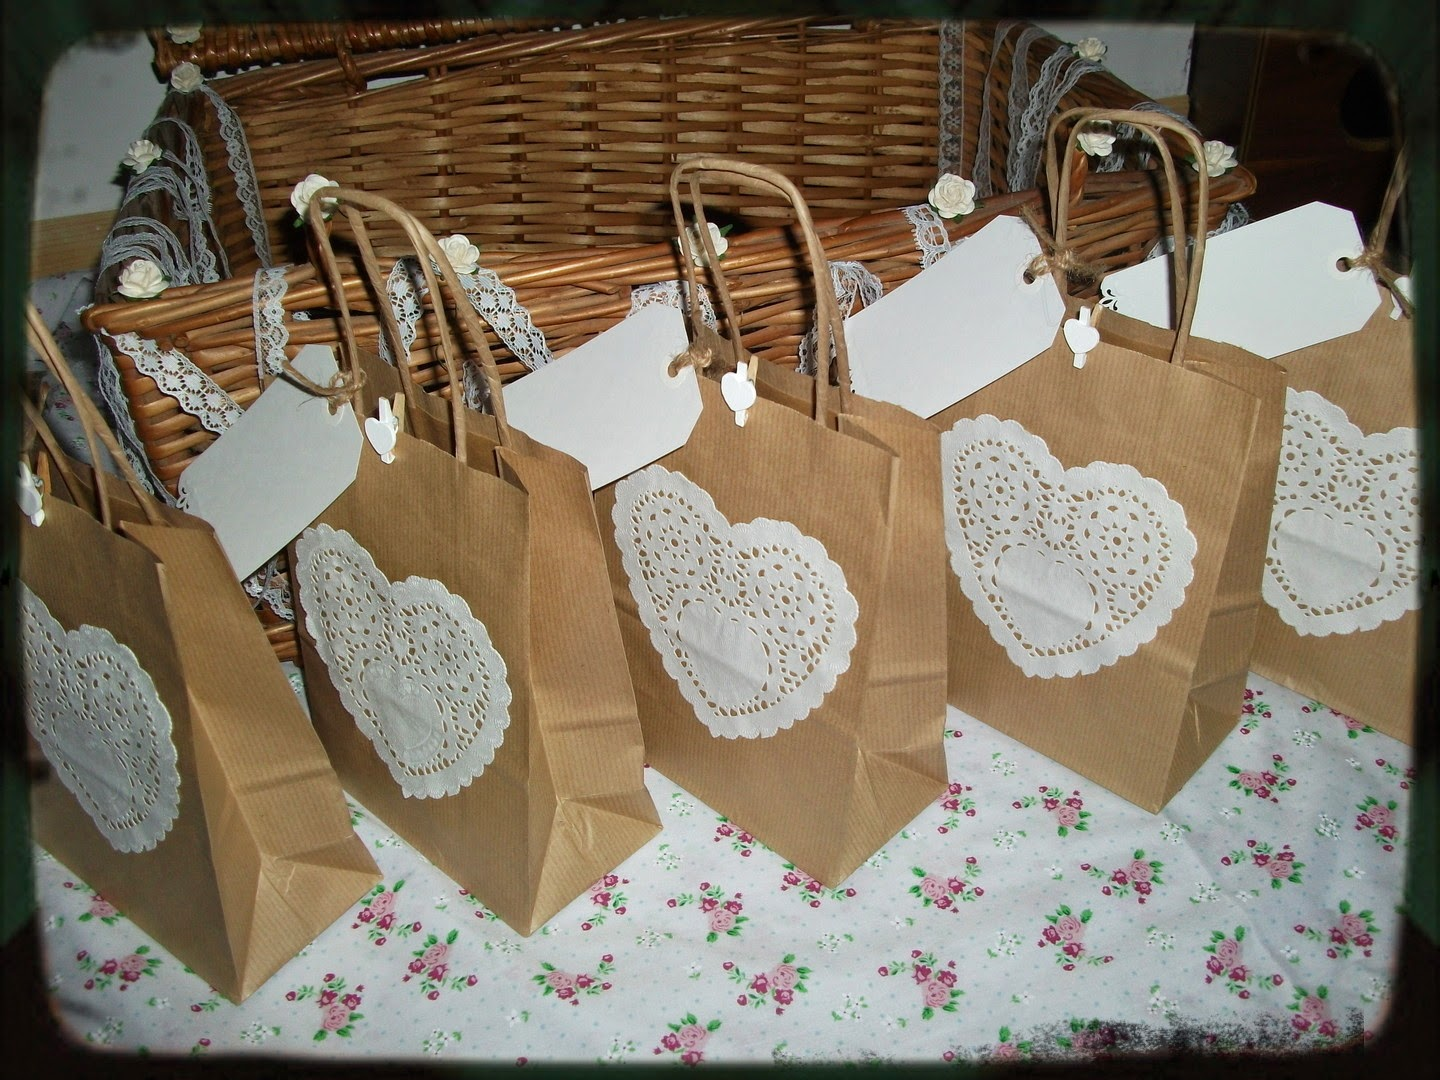 Colorado Wedding Gift Bag Ideas : Shabby Chic, brown kraft wedding gift bags, with heart lace doily and ...